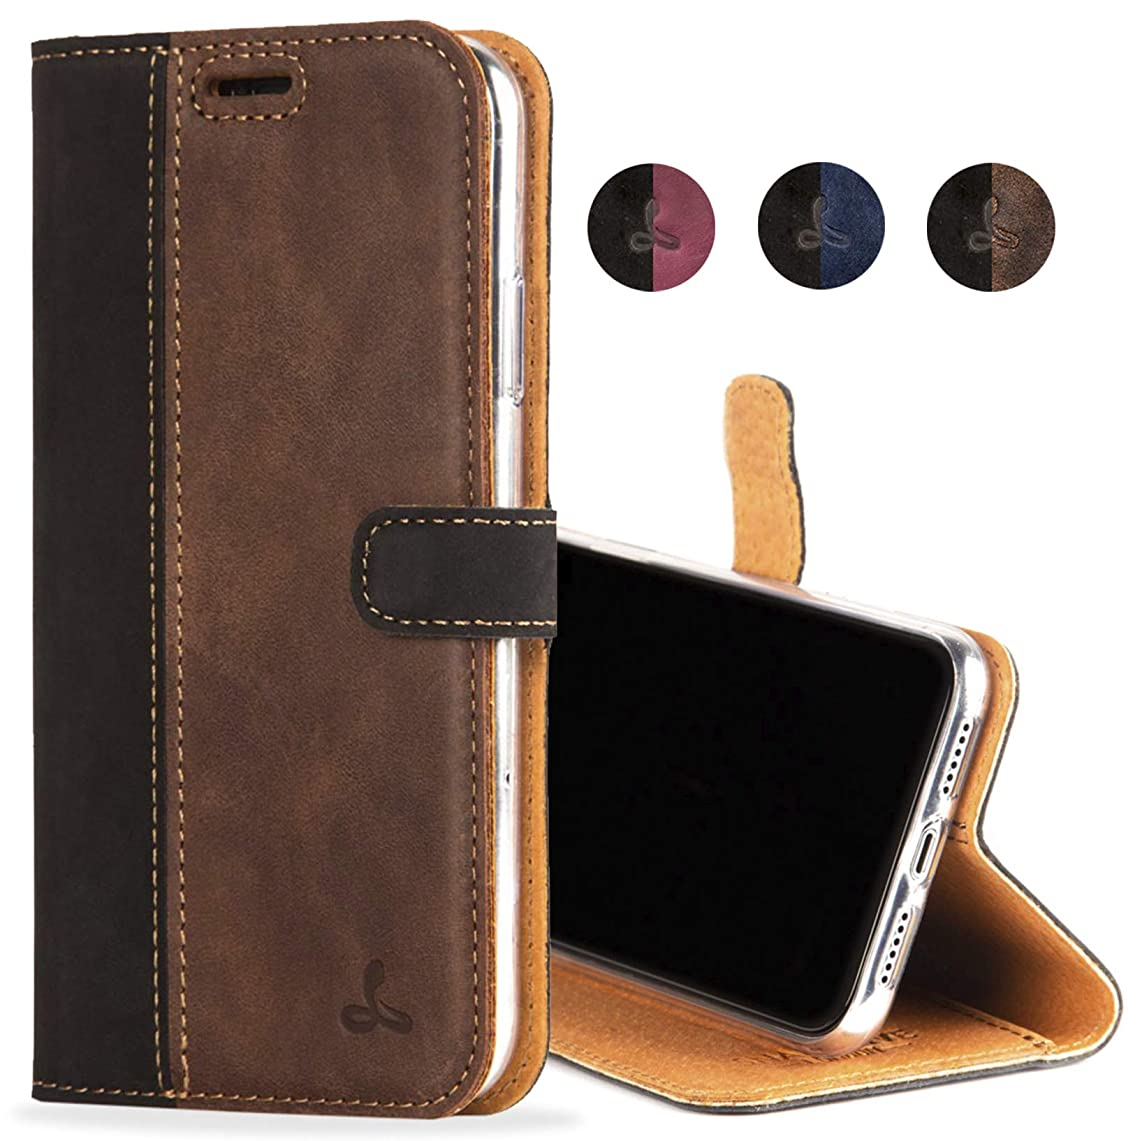 iPhone XR Case, Luxury Genuine Leather Wallet with Viewing Stand and Card Slots, Flip Cover Gift Boxed and Handmade in Europe for Apple iPhone XR (Black and Brown)